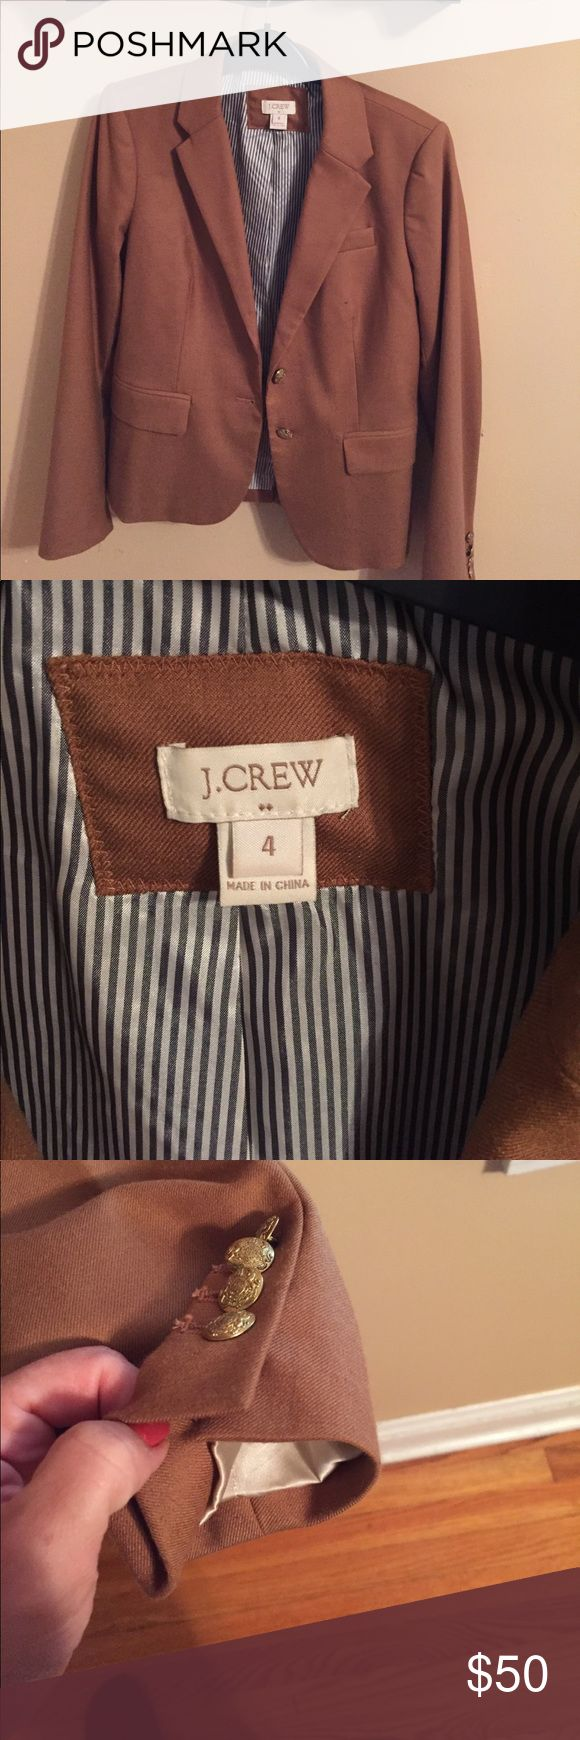 J.Crew Factory Schoolboy blazer camel 4 J.Crew Factory Schoolboy blazer Camel 4. Excellent condition hardly worn. Tag says it was from the 2015 collection. I have other schoolboy Blazers in size 4 available if you'd like to bundle and see. Sadly they no longer fit. J. Crew Factory Jackets & Coats Blazers